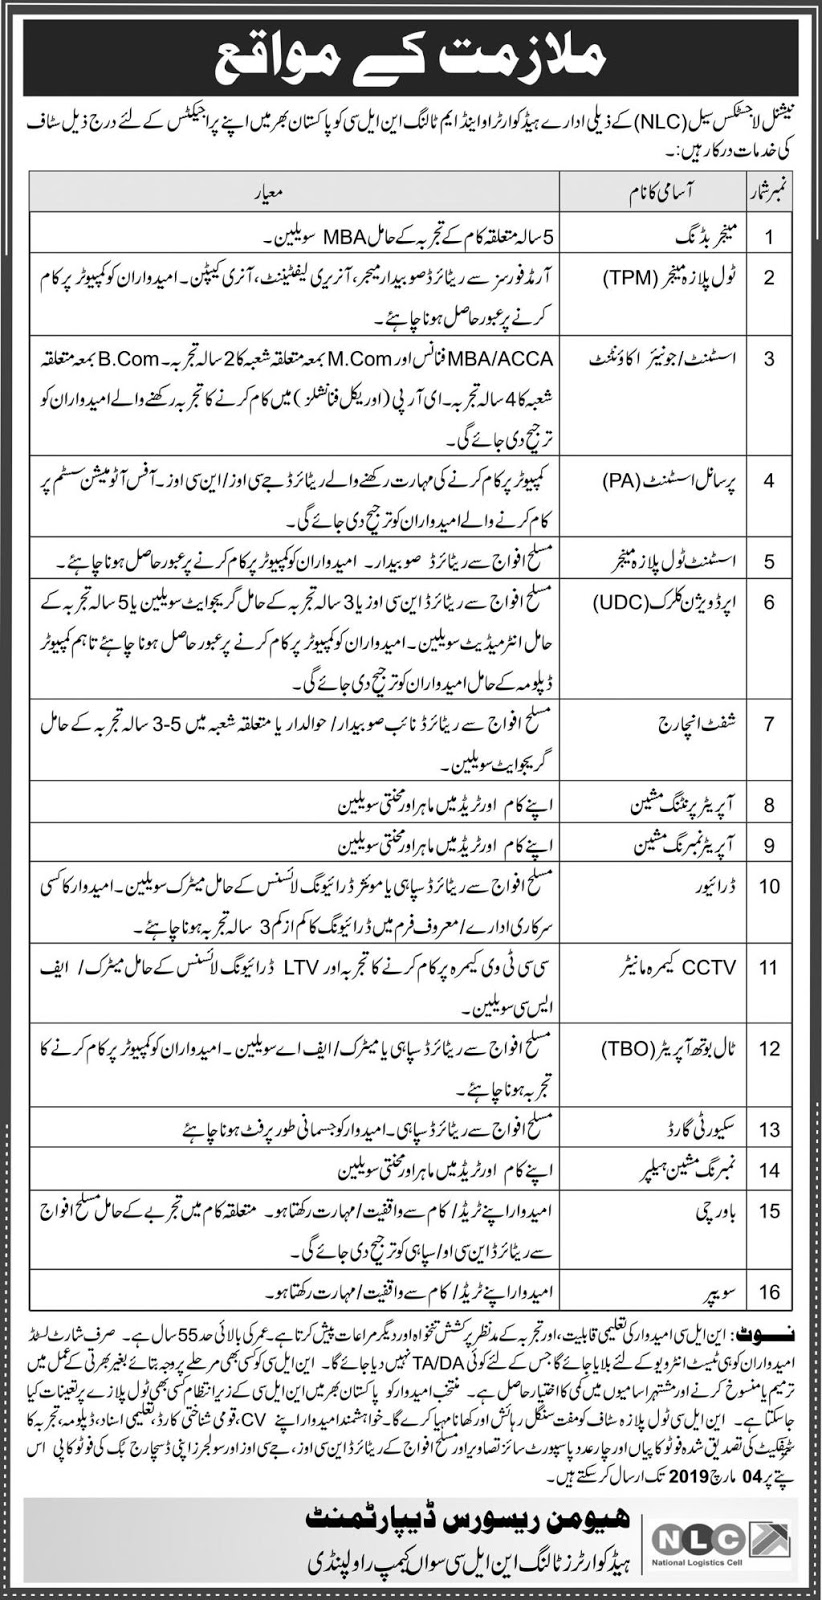 National Logistics Cell NLC Jobs February 2019  Vacancies 16